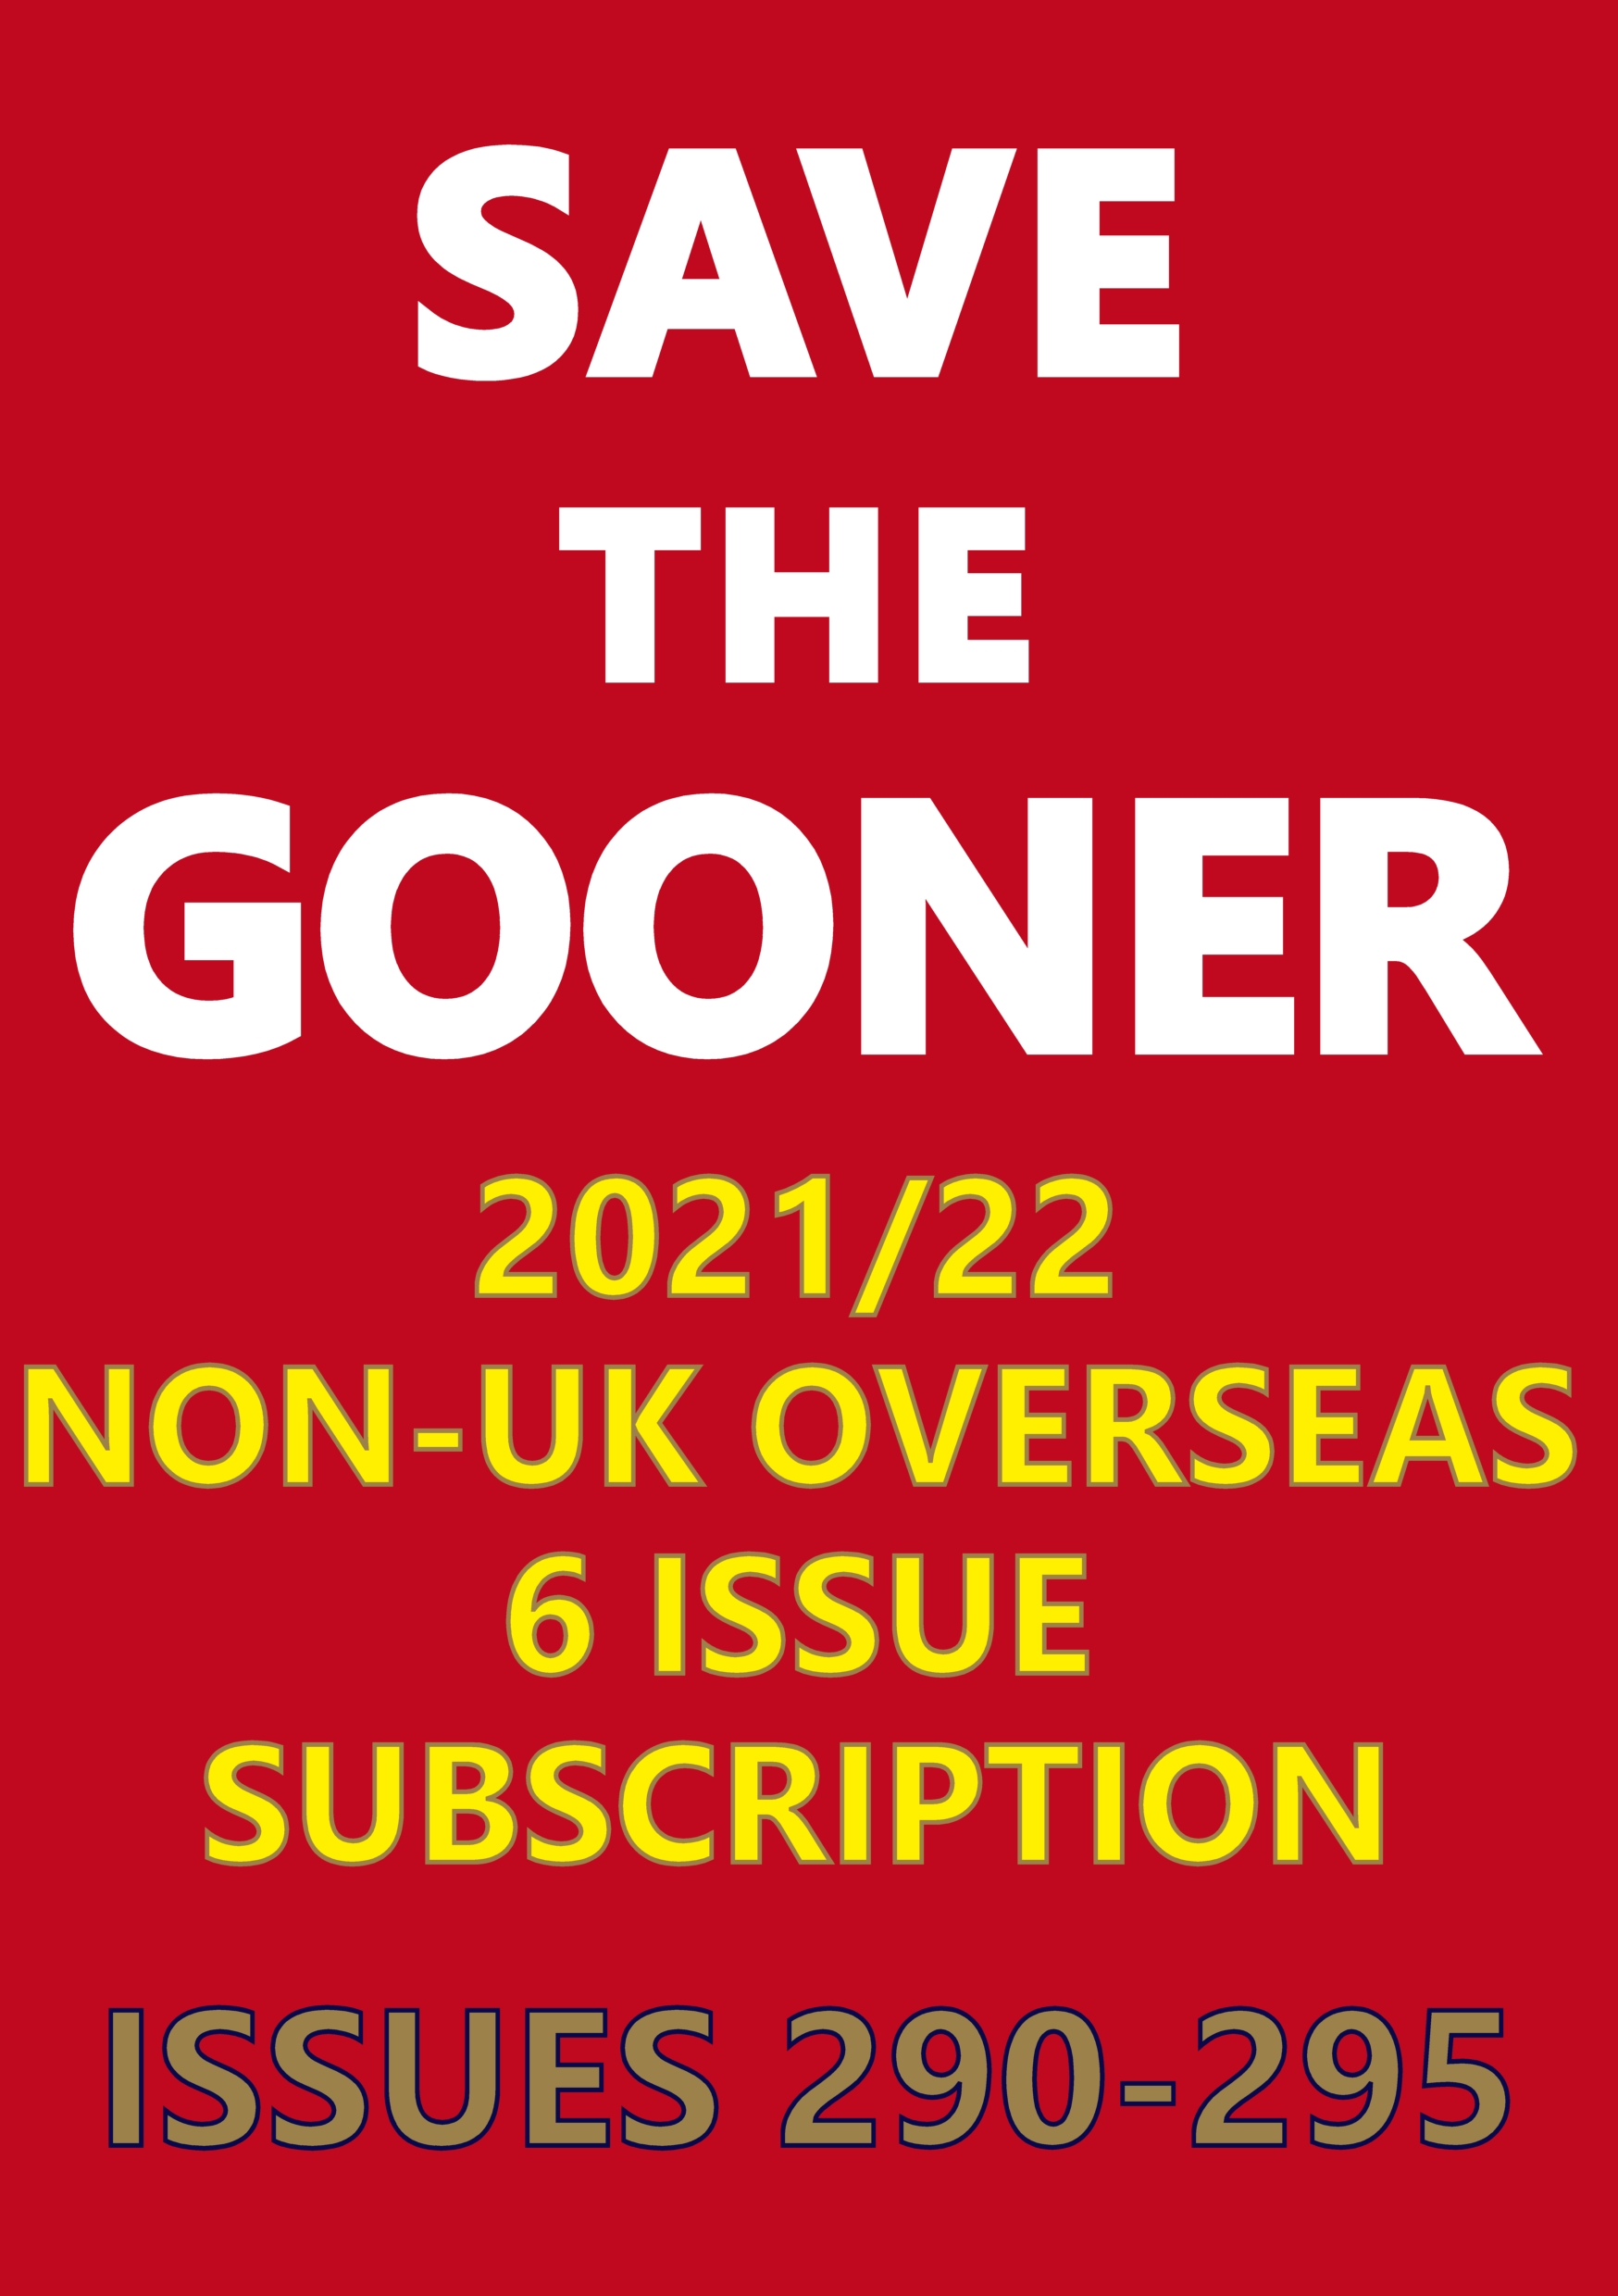 Save The Gooner 2021/22 subscription (Overseas 1 Year)